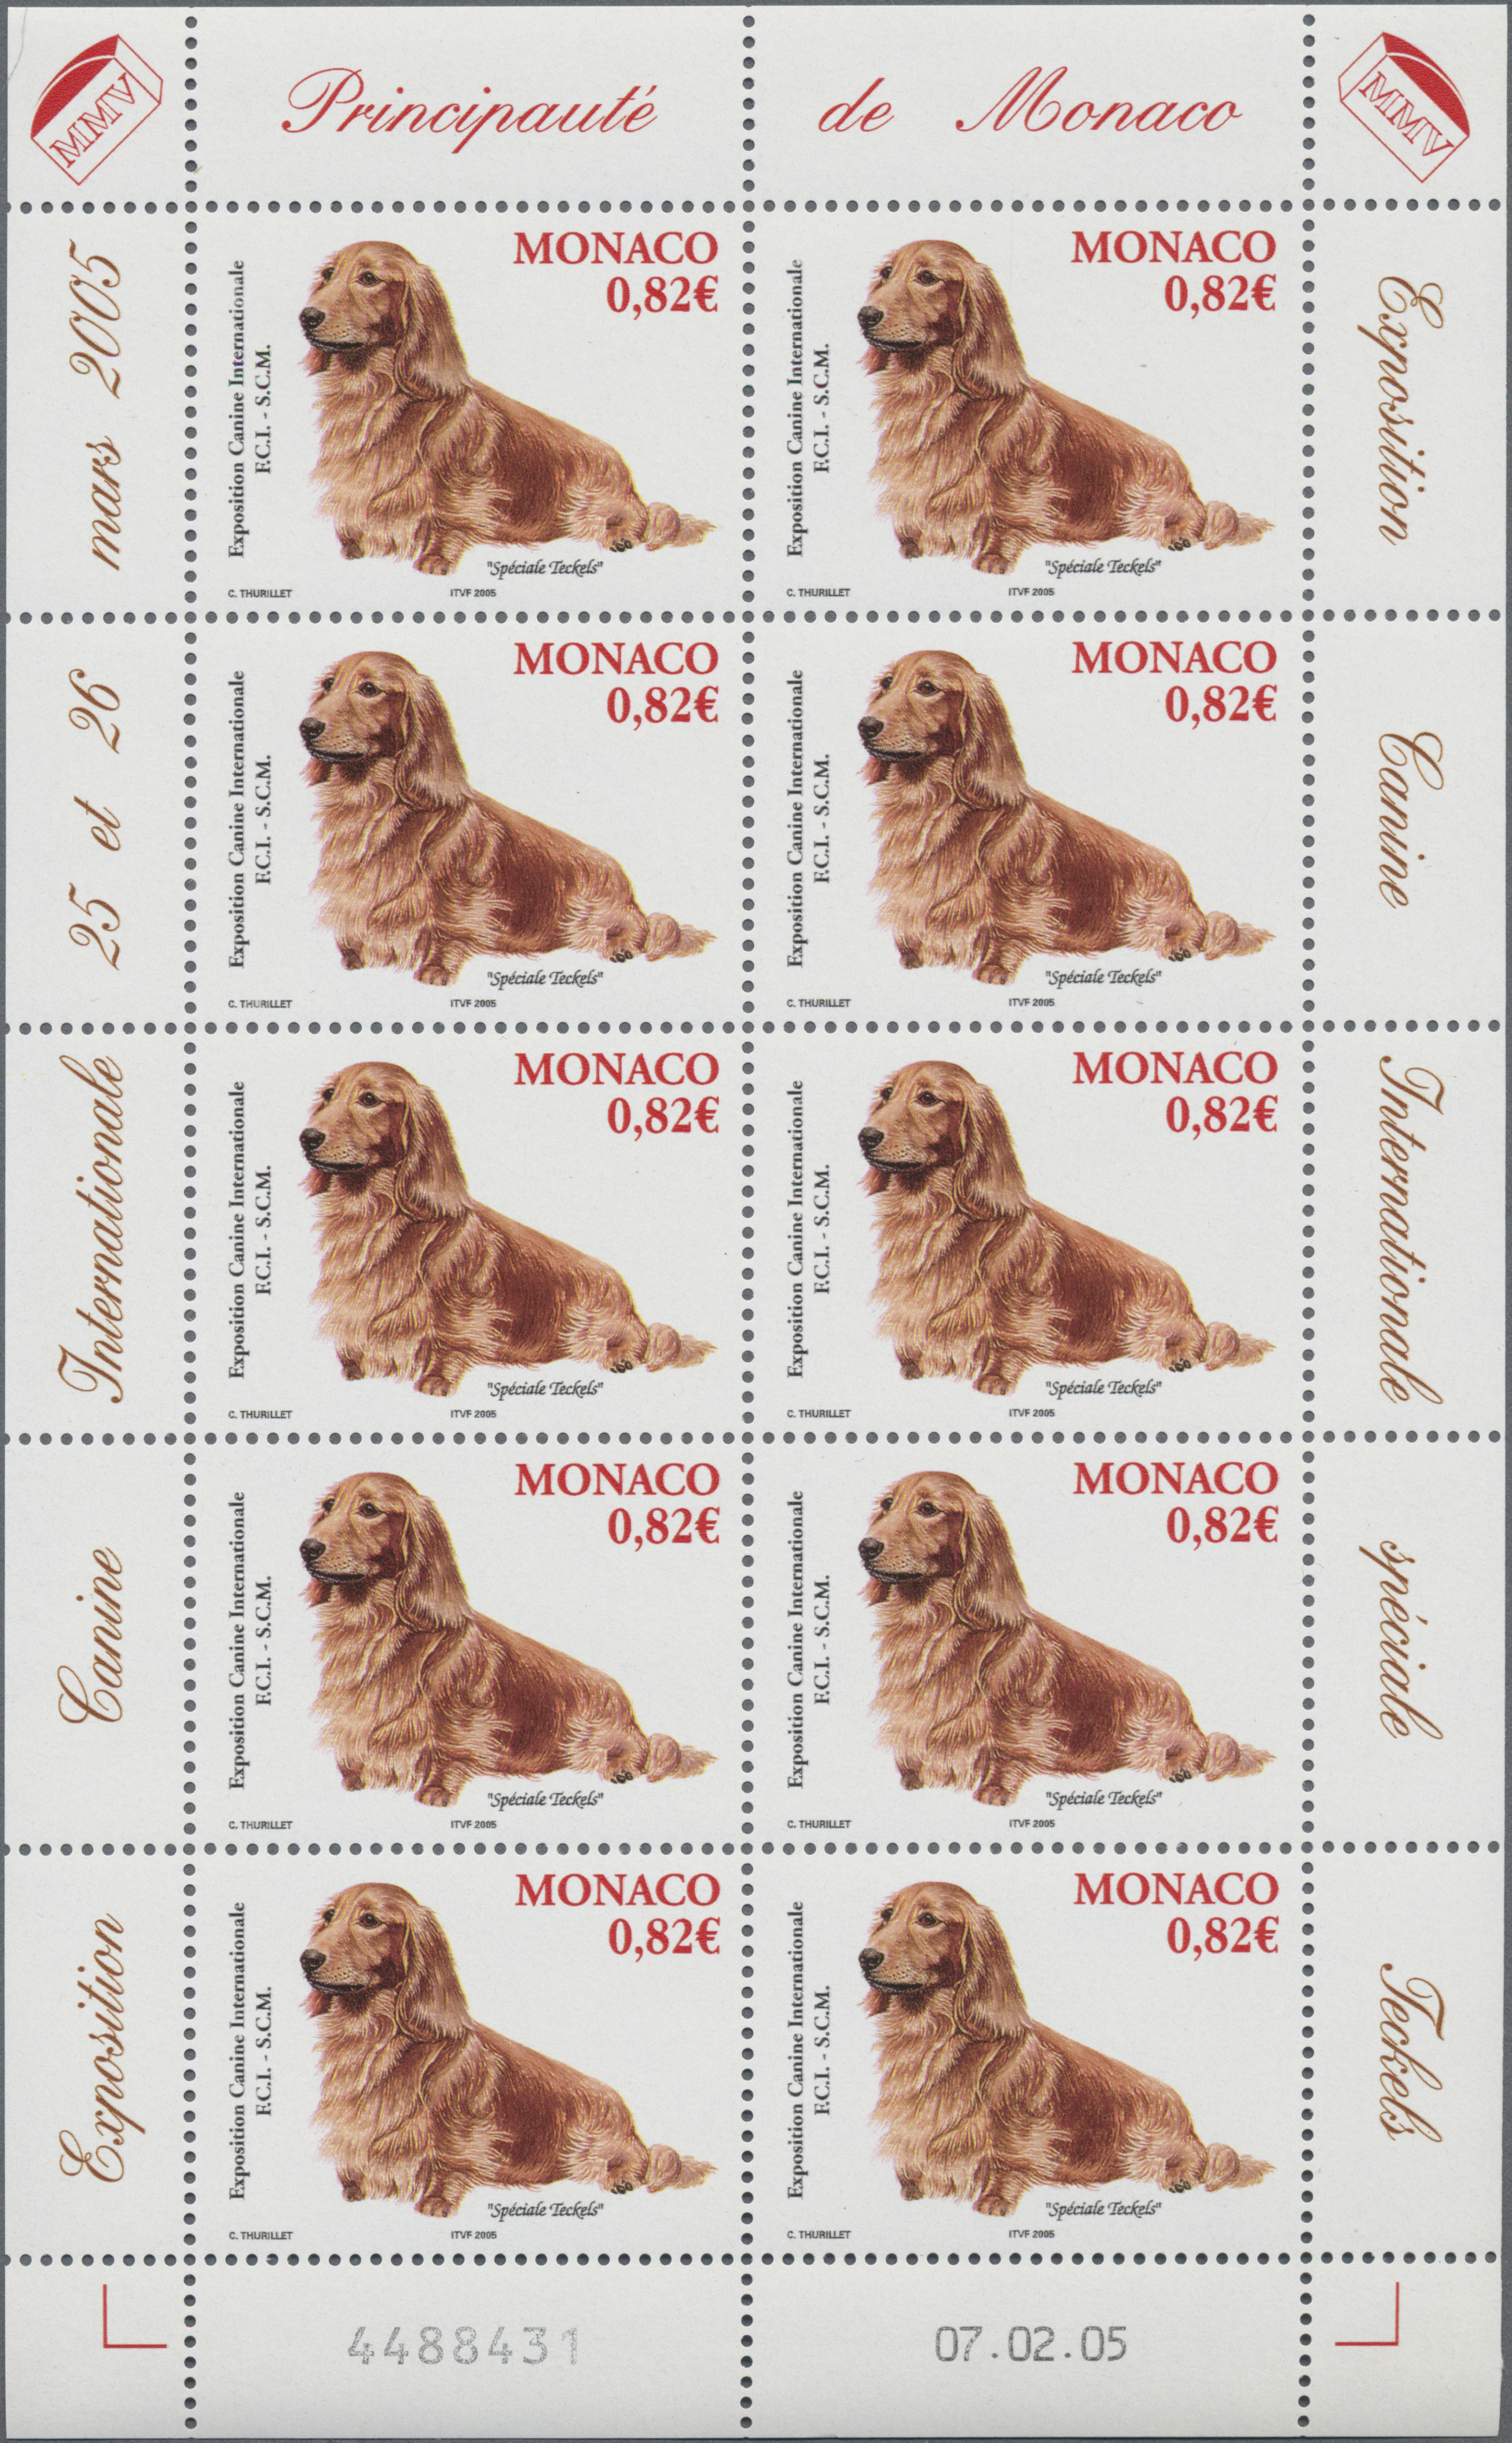 Lot 34990 - Monaco  -  Auktionshaus Christoph Gärtner GmbH & Co. KG Sale #44 Collections Germany